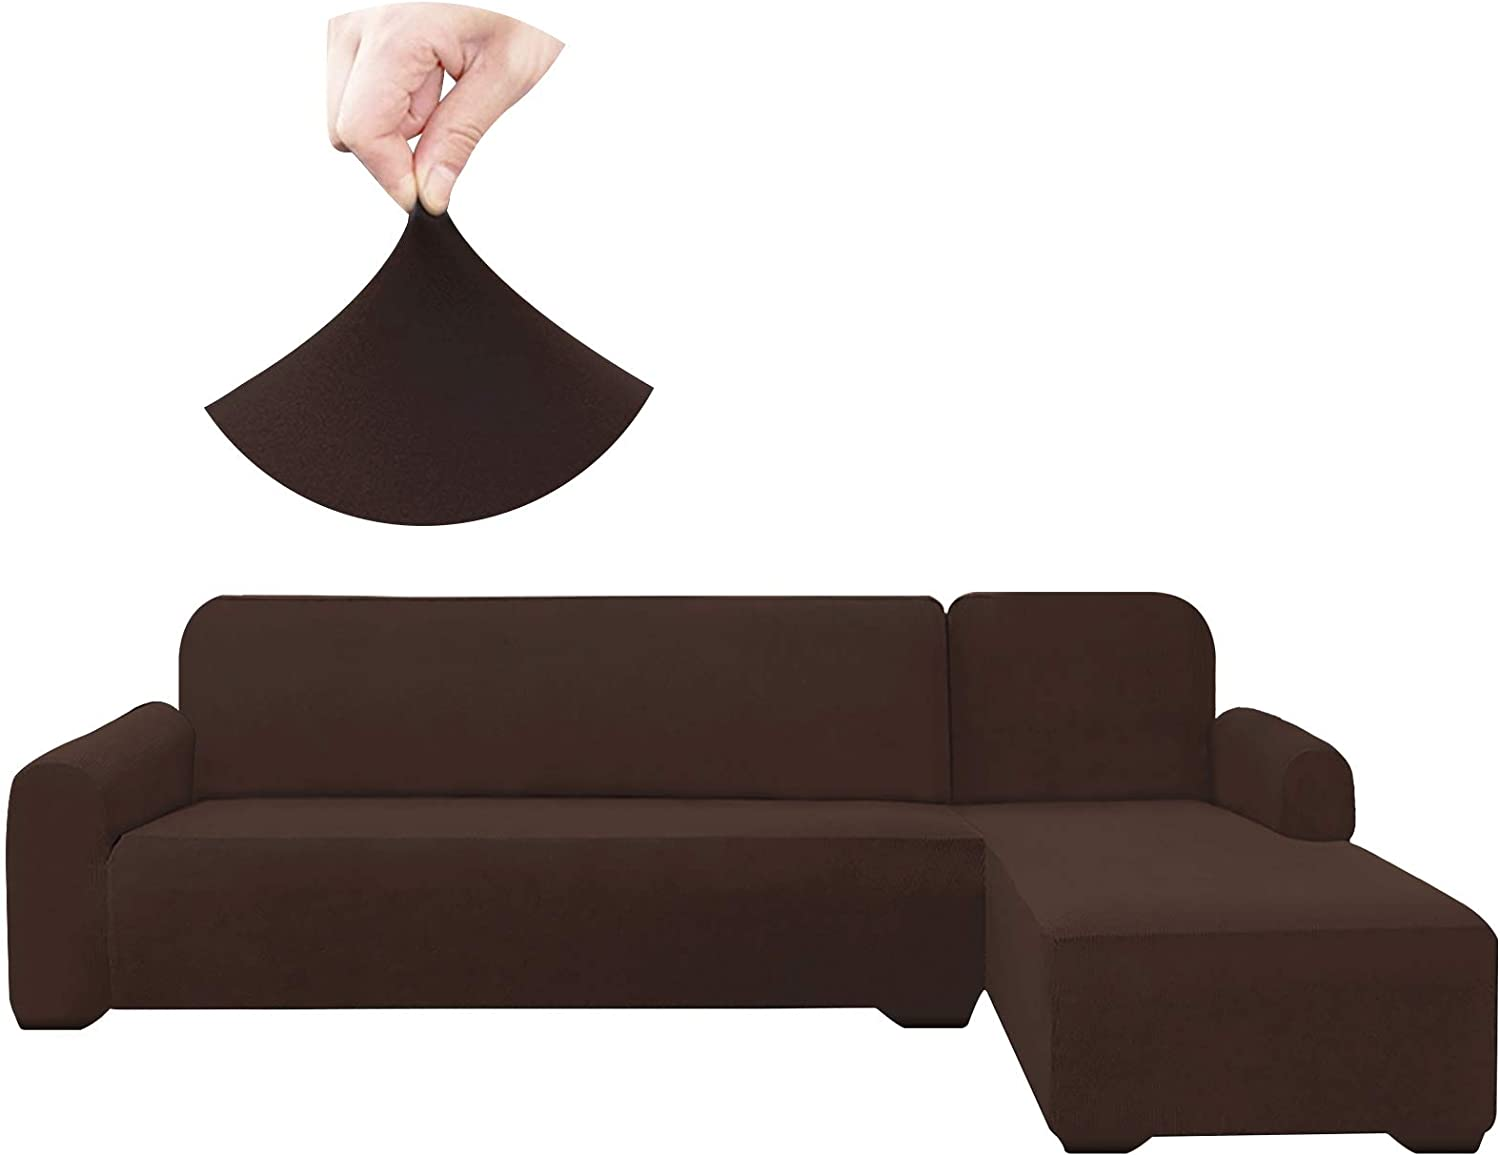 HDCAXKJ Sectional Couch Covers Super Stretch Water Resistance L Shape Sofa Cover Universal 2 Piece Thick L-Shaped Slipcovers Set Living Room Anti Slip Dogs Pets Furniture Protector (Coffee, Large)